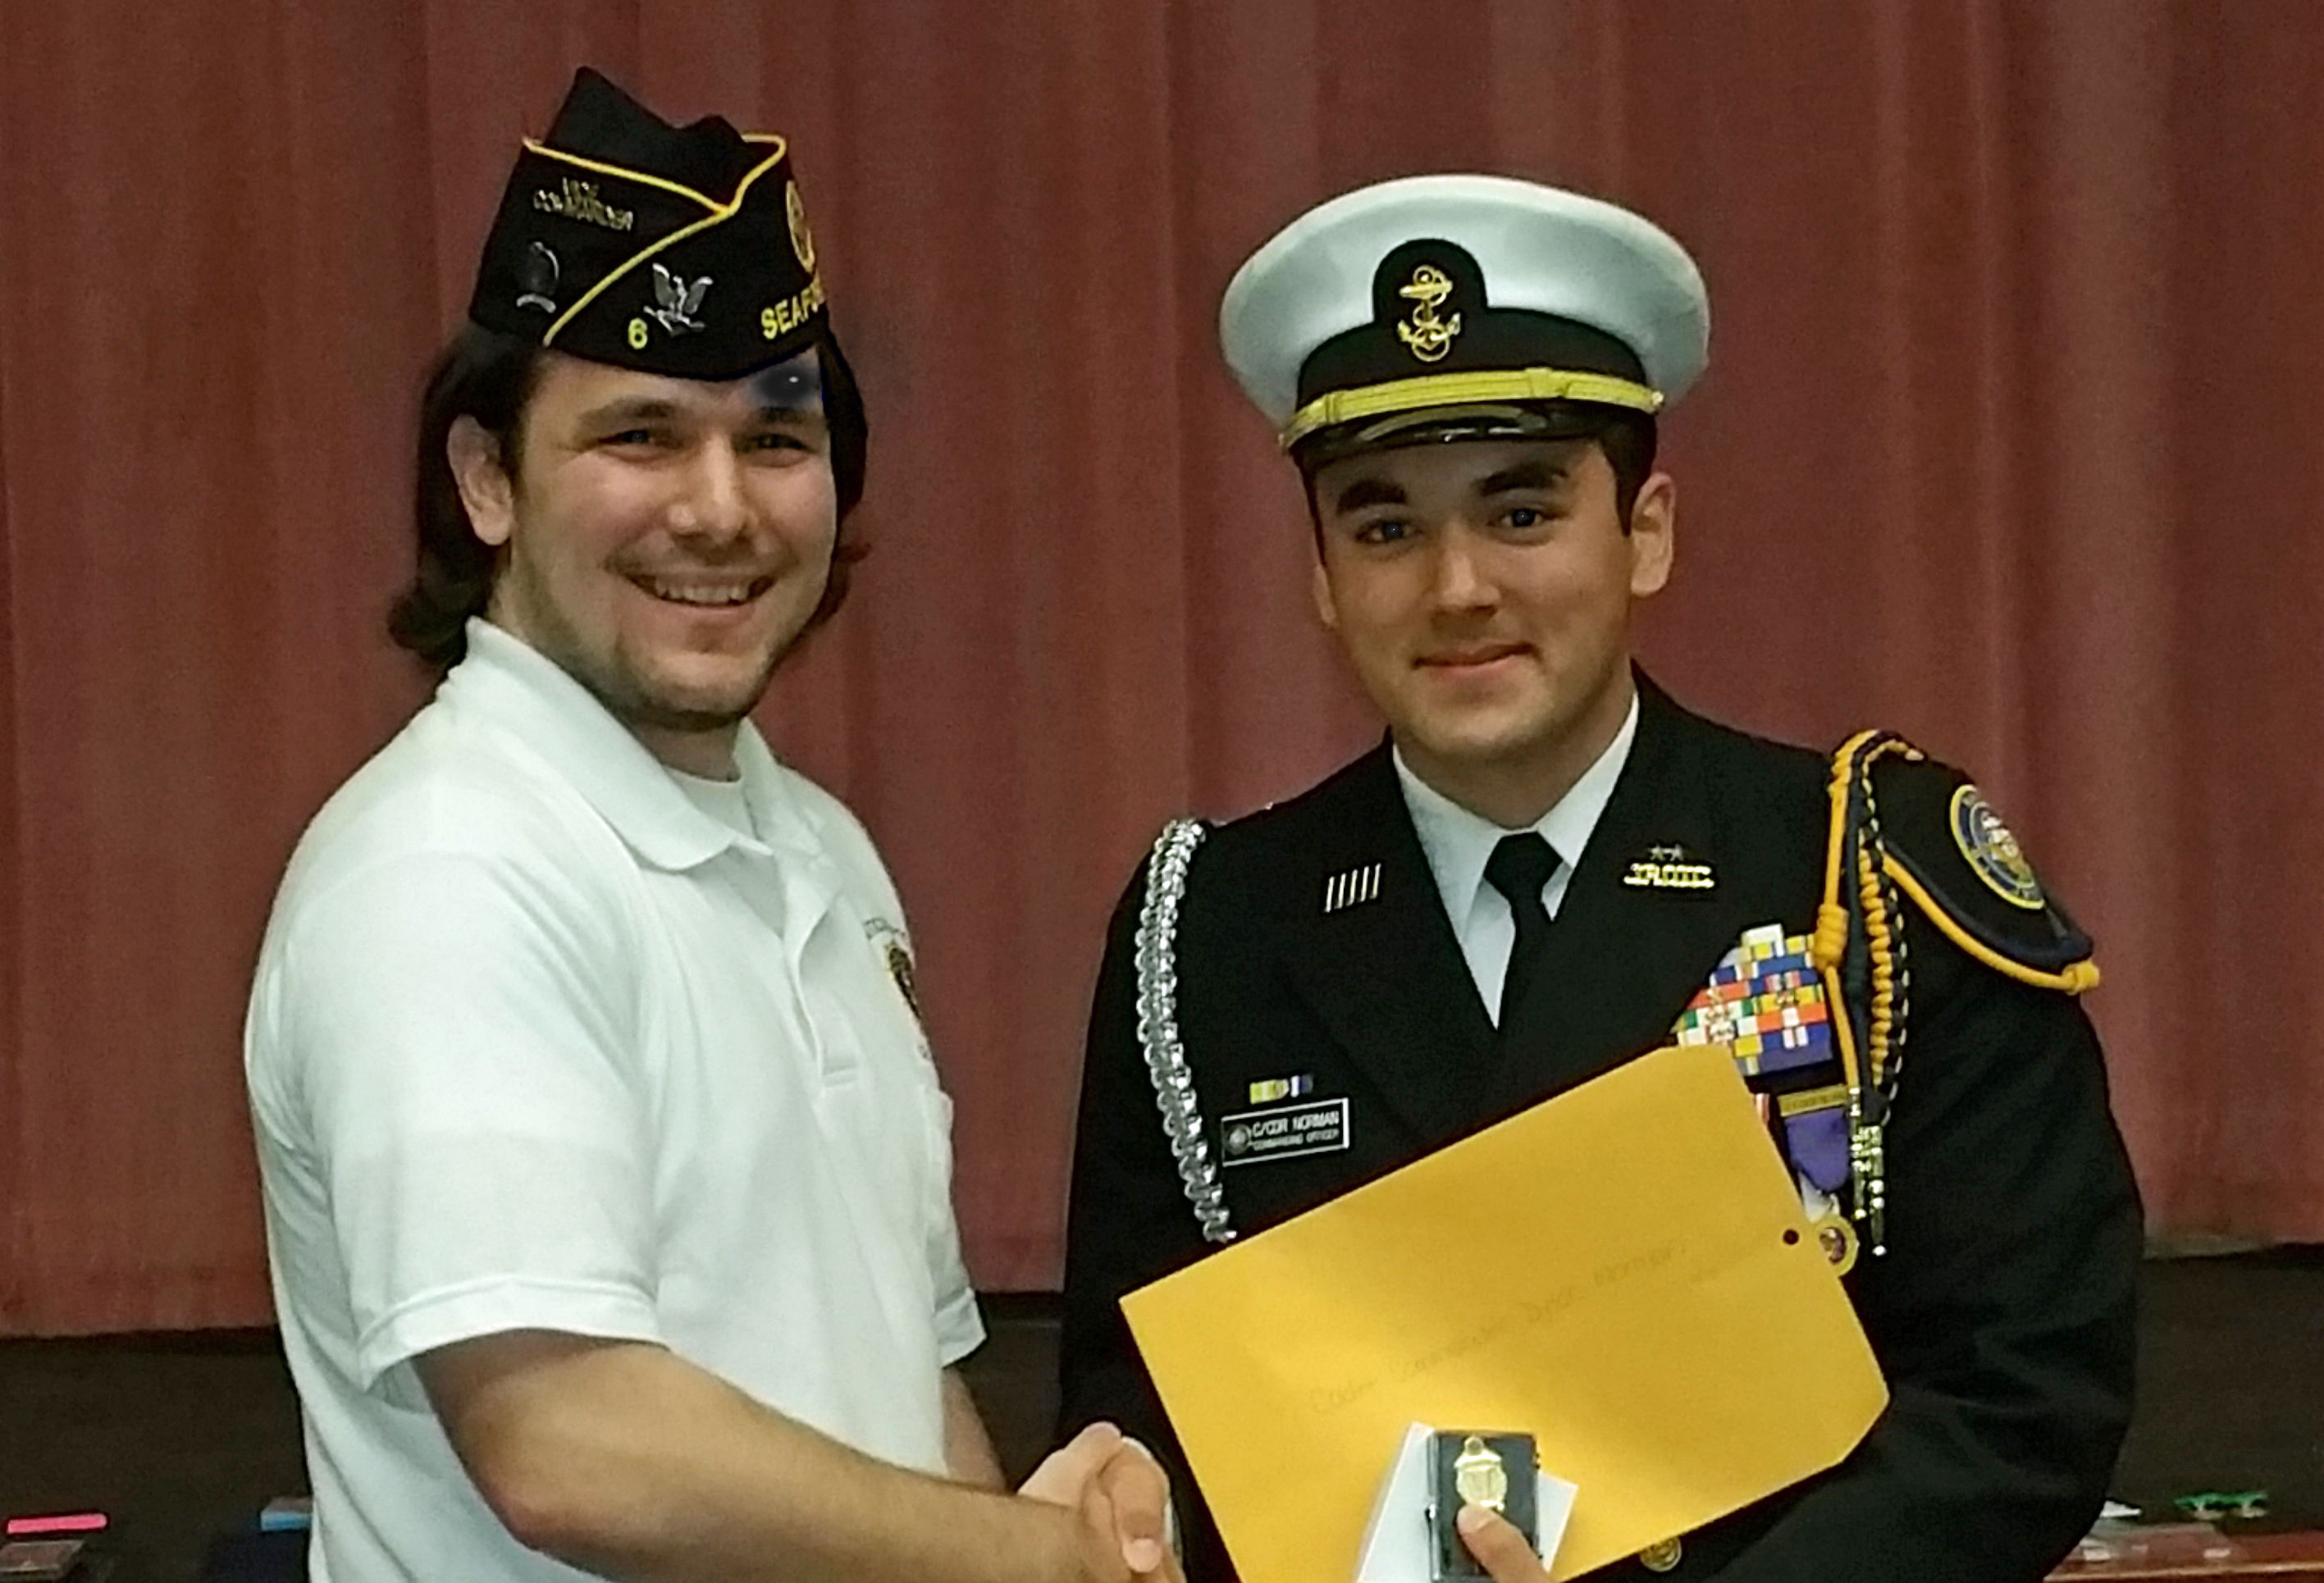 2018 Seaford NJROTC Cadet of the Year - Dylan Norman